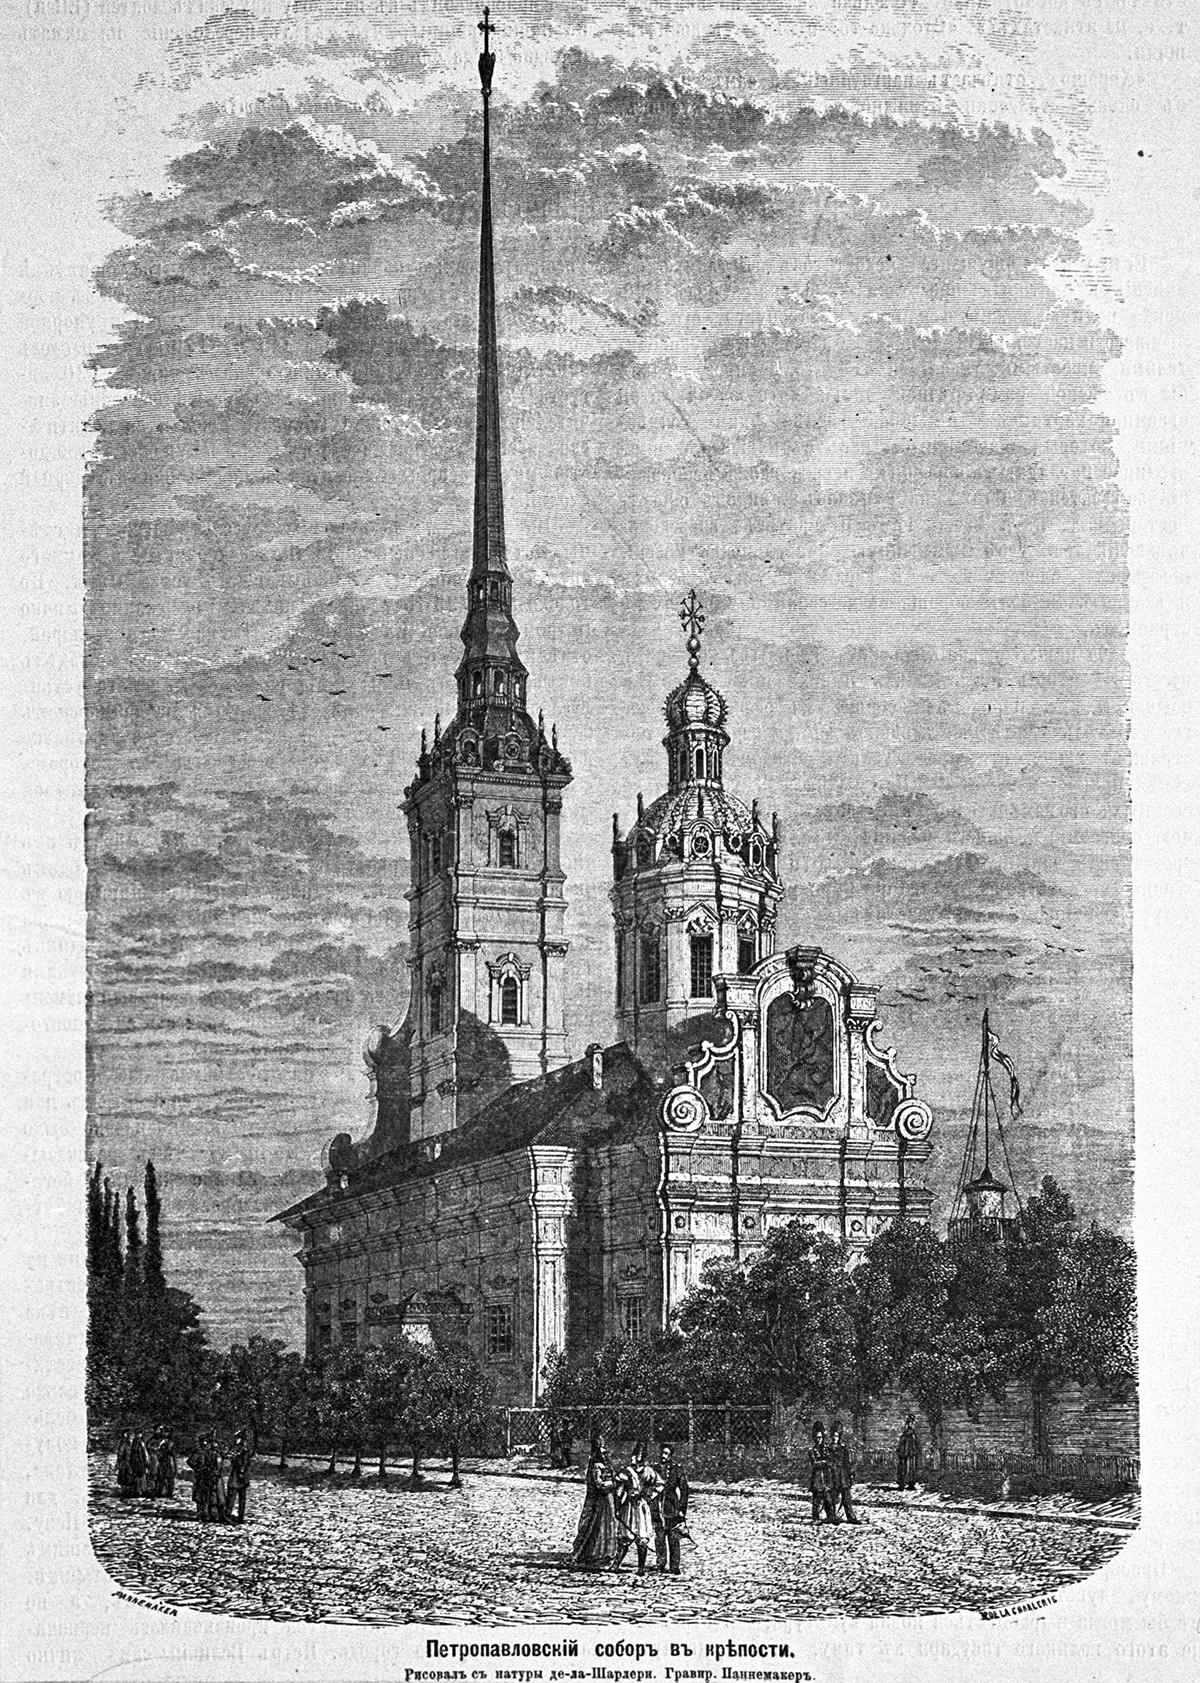 The Peter and Paul Cathedral, Peter and Paul fortress, St. Petersburg. Necropolis of the Russian Emperors. A 19th-century engraving